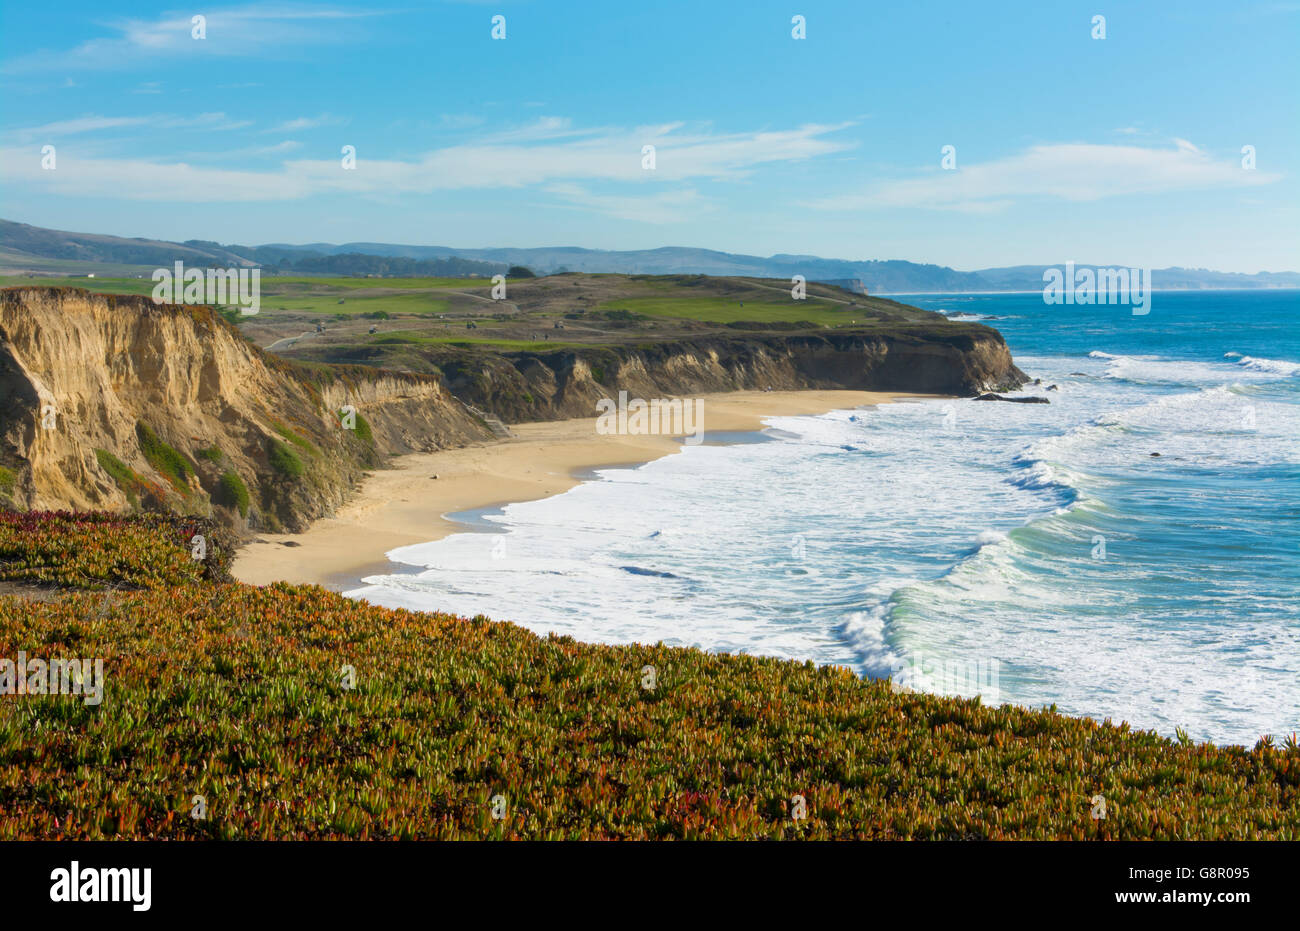 Half Moon Bay California shore ocean cliffs off of the Ritz Golf Course with waves sand at Half Moon Bay Golf Links - Stock Image